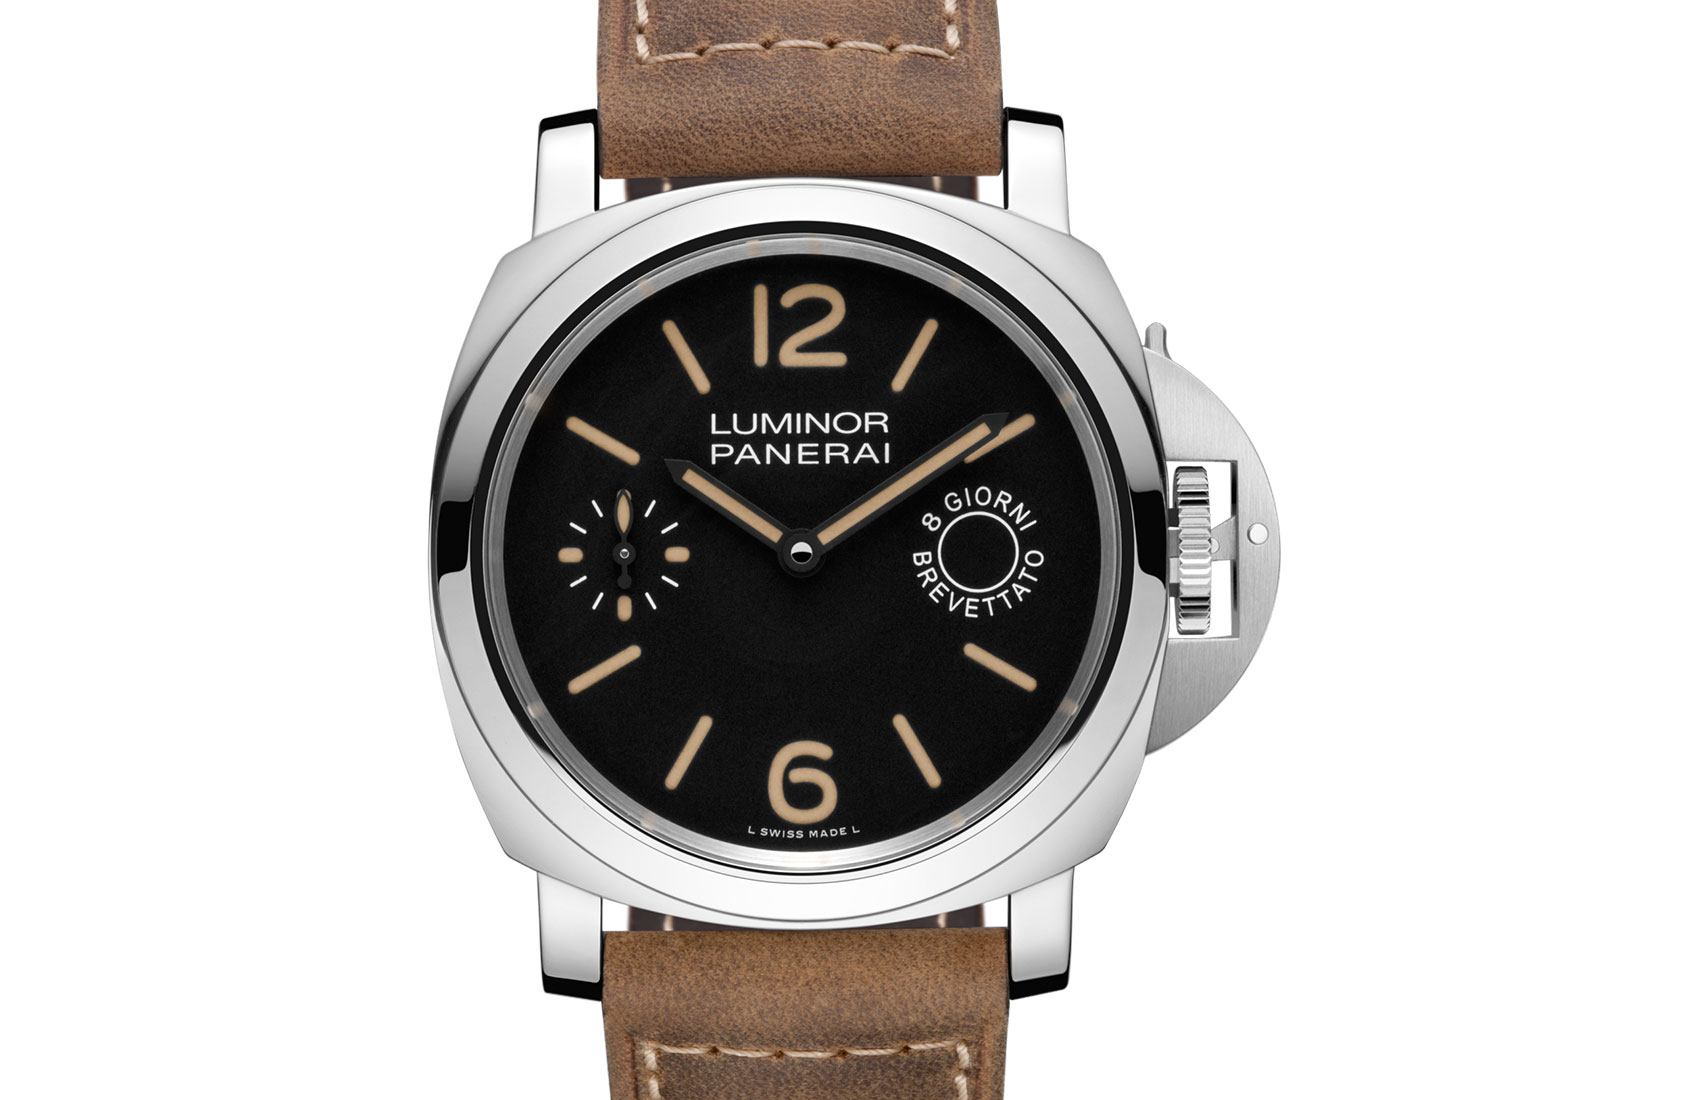 VIDEO: We polled people about the Panerai Luminor vs the Radiomir and the results are in